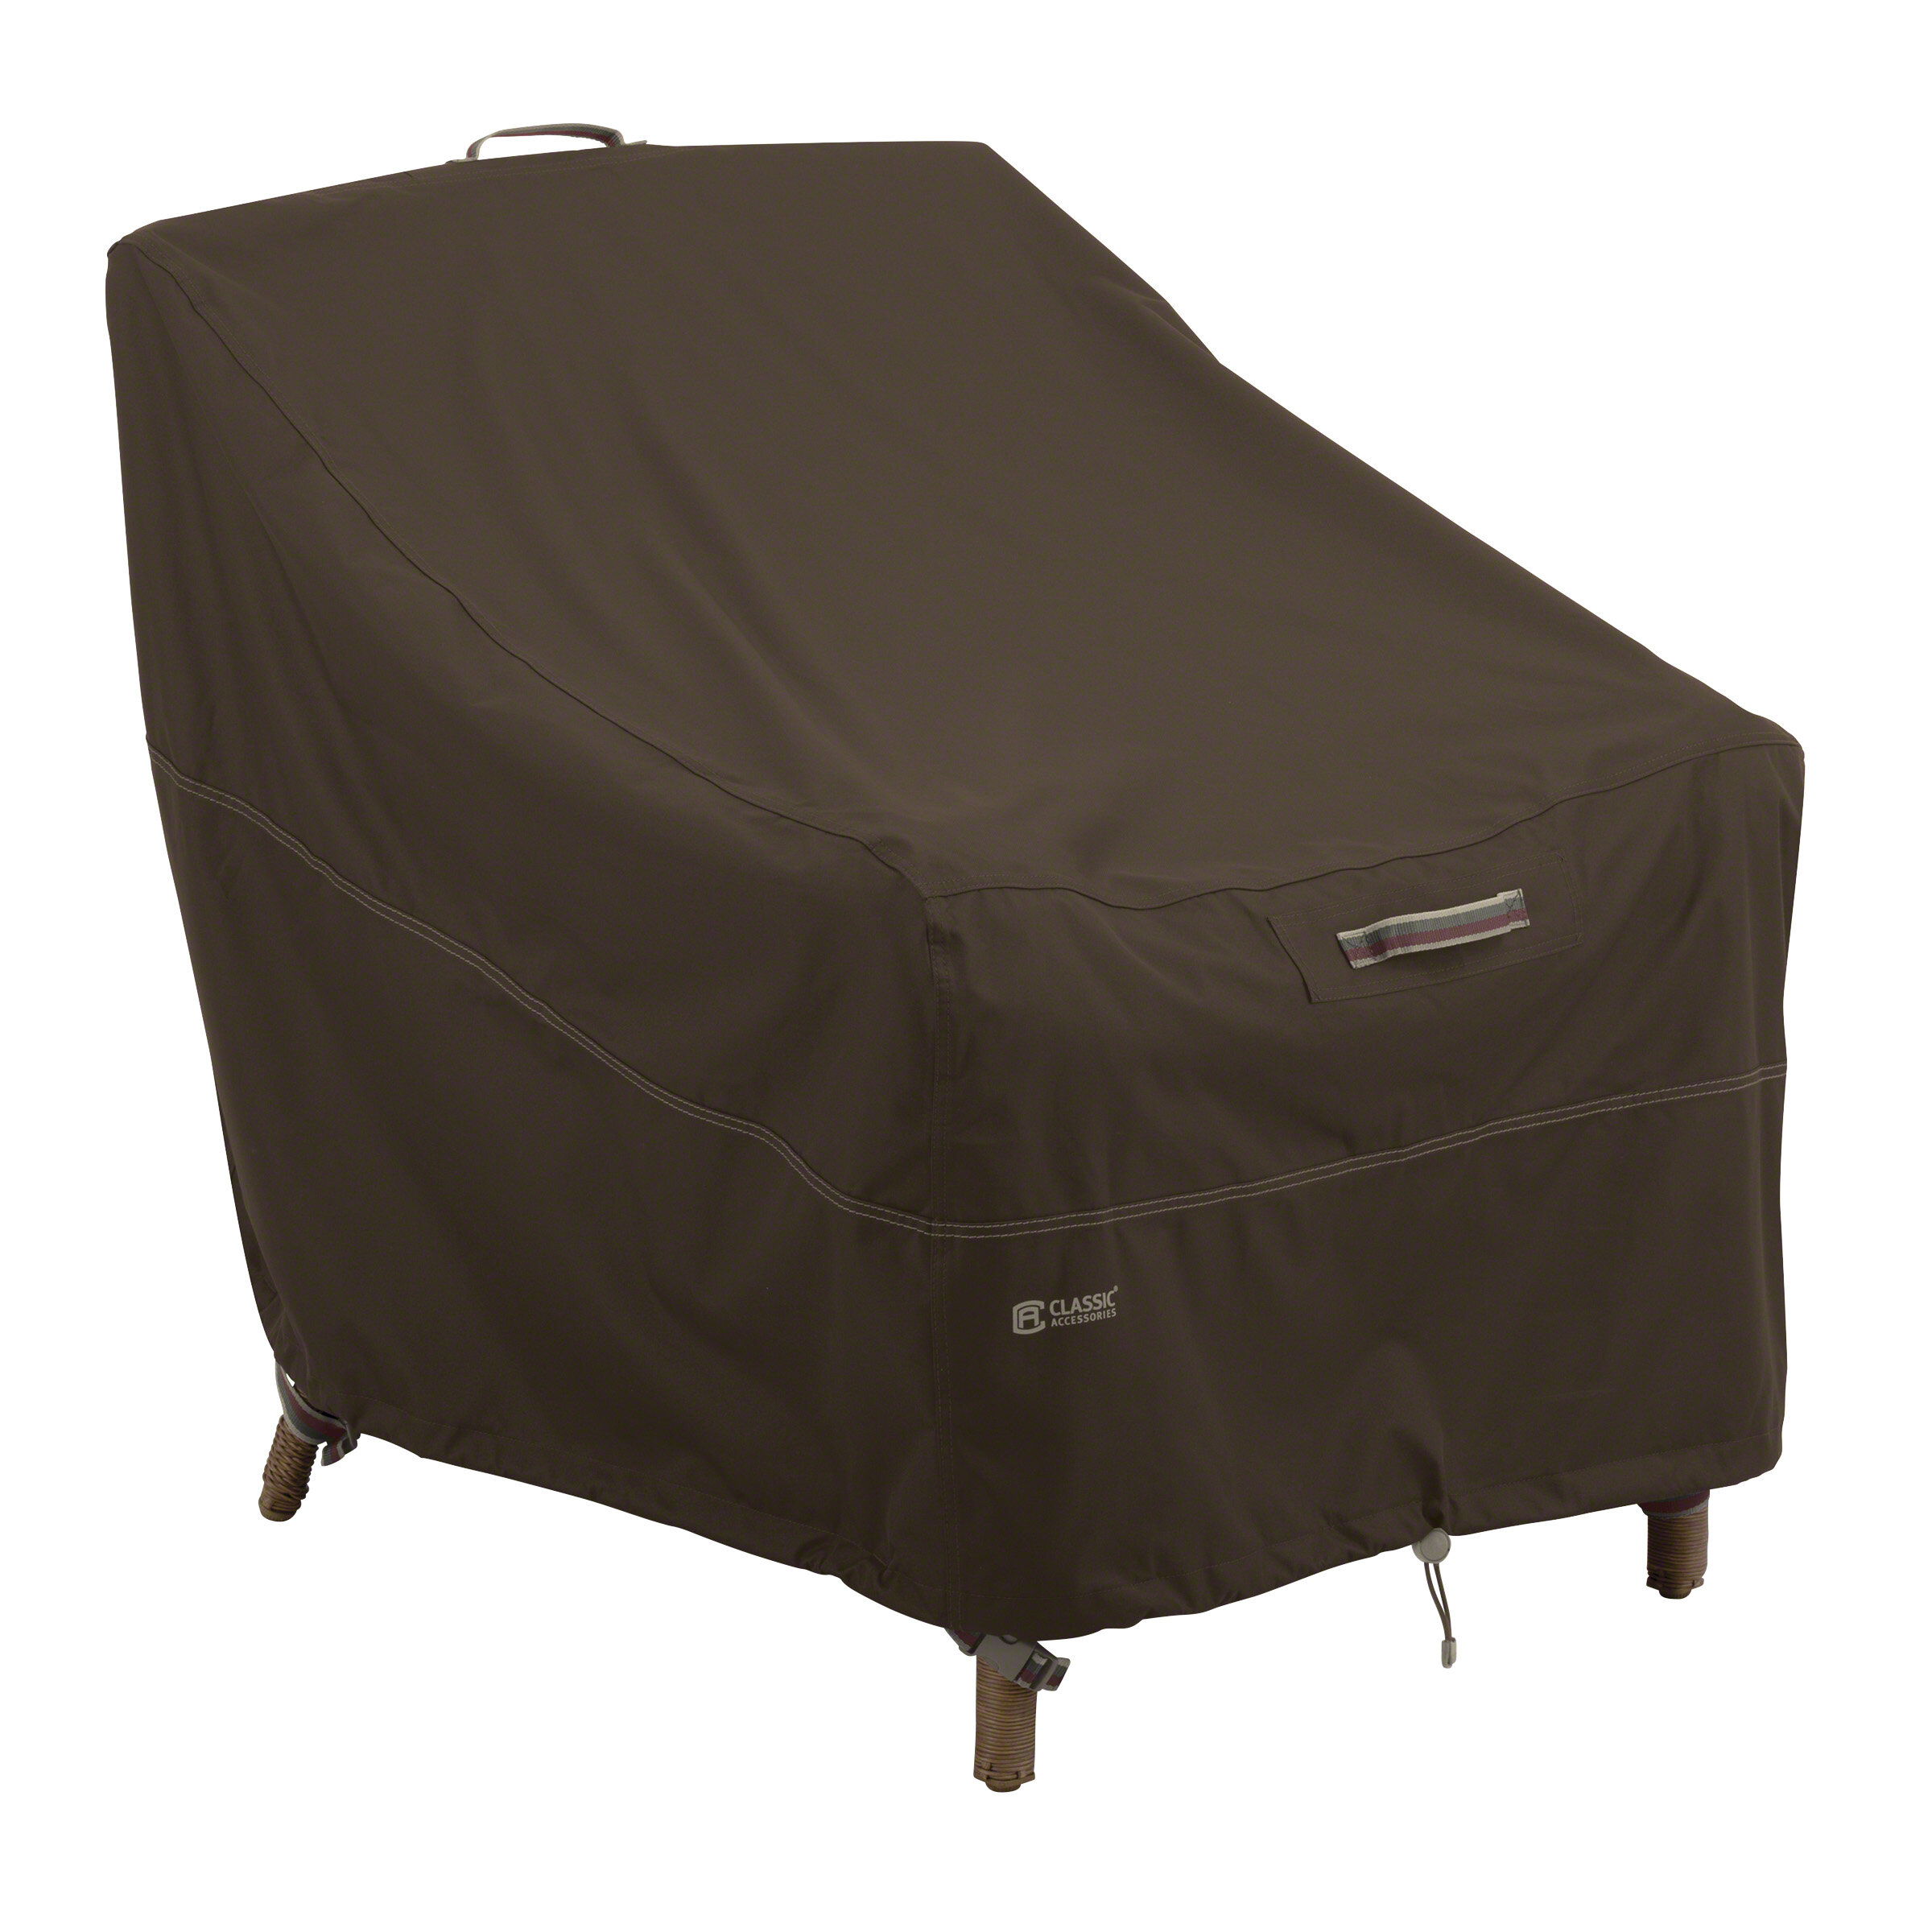 Rainproof Patio Furniture.Donnelly Rainproof Patio Chair Cover